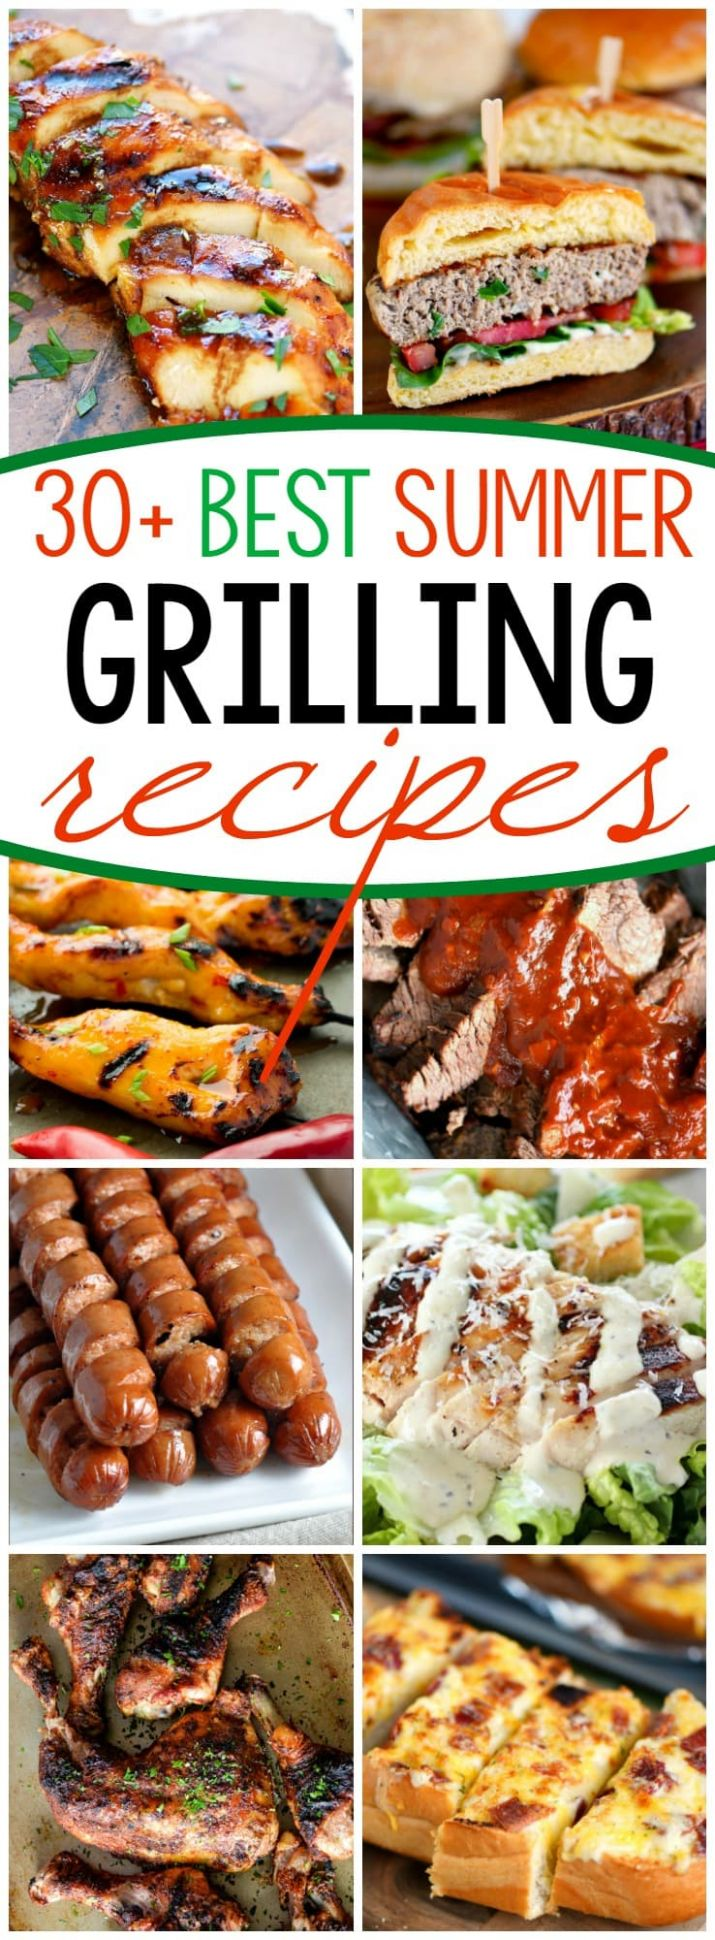 10 Grilling Recipes for Summer - Mom On Timeout